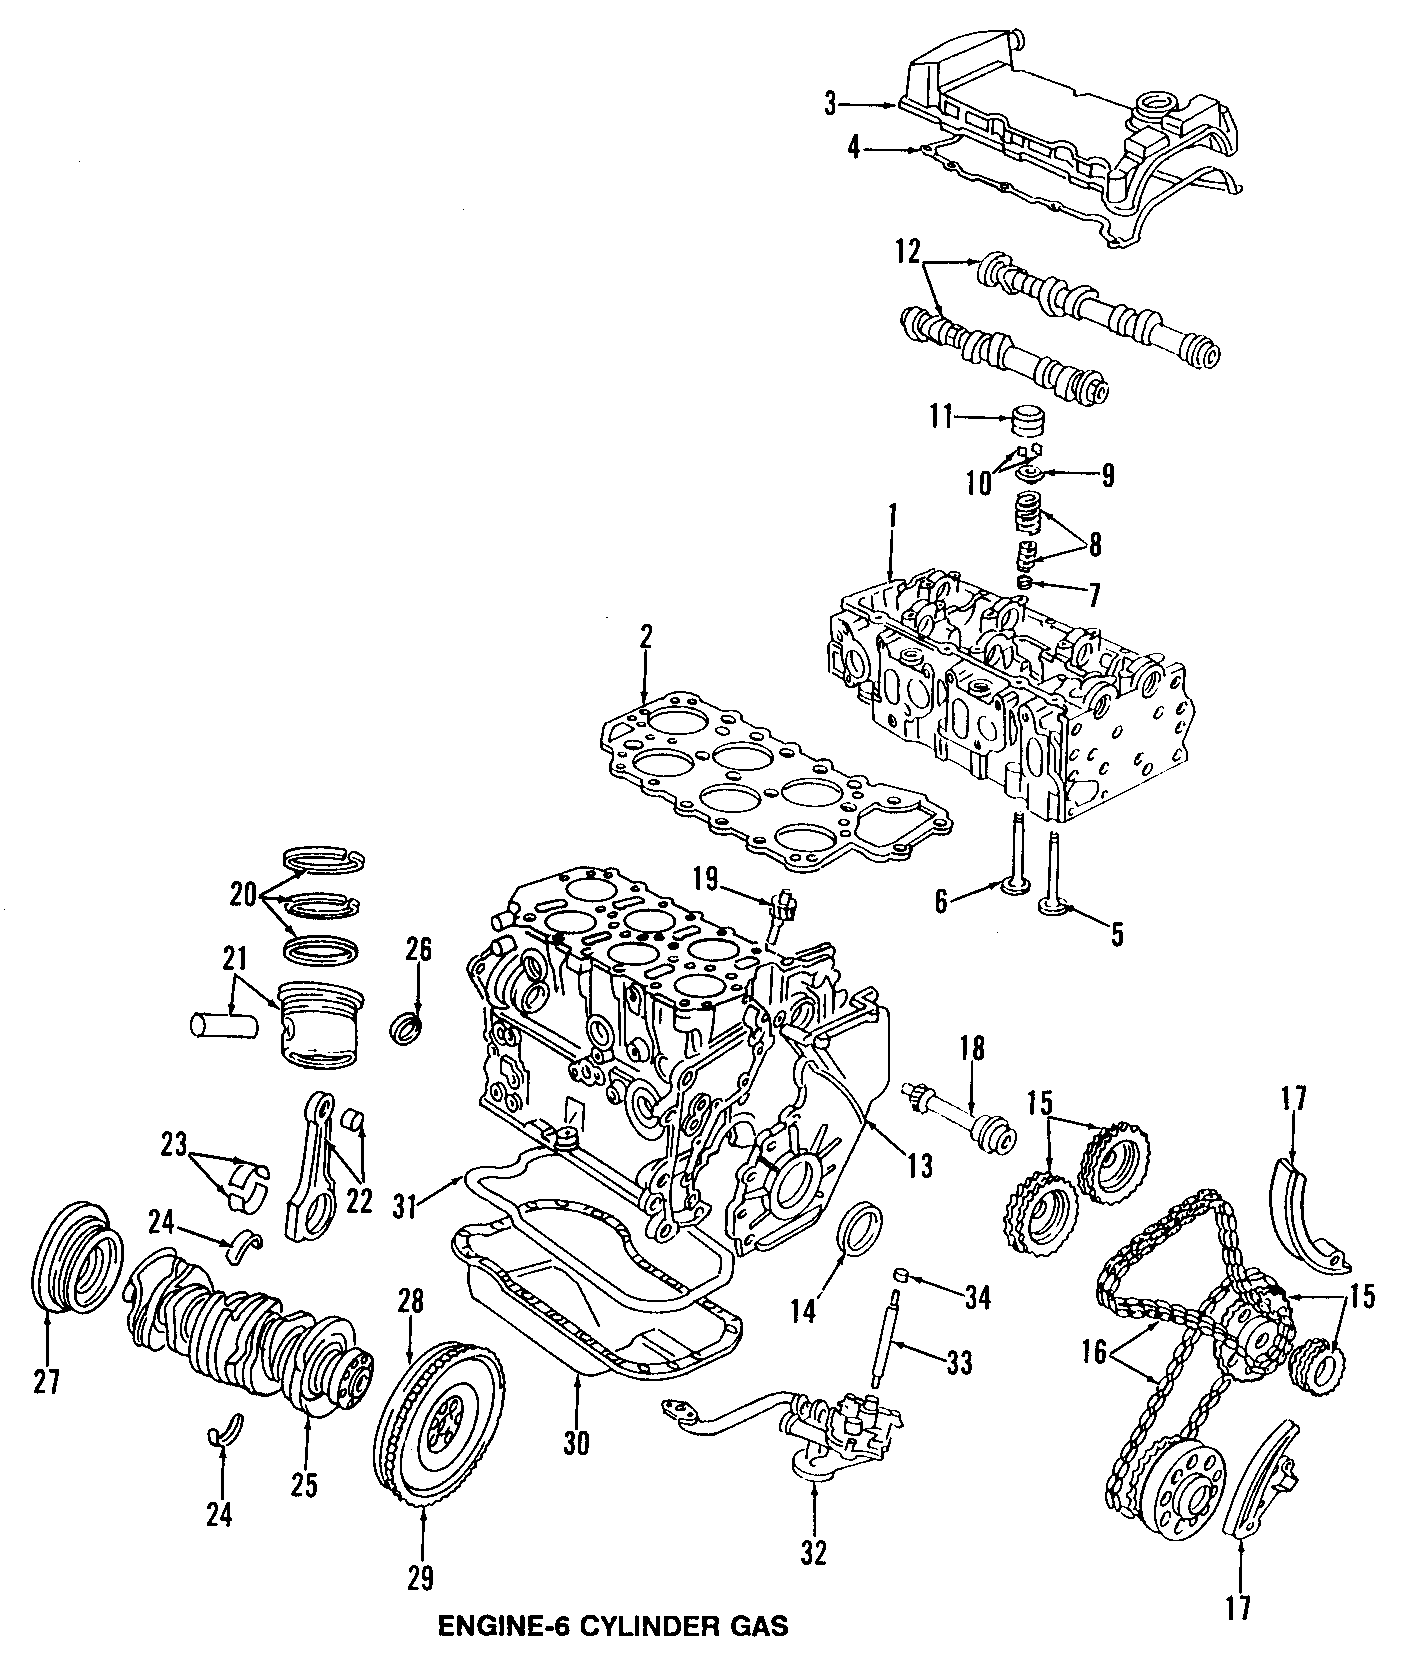 Volkswagen Jetta Engine Camshaft. Intake, VALVES, BEARINGS